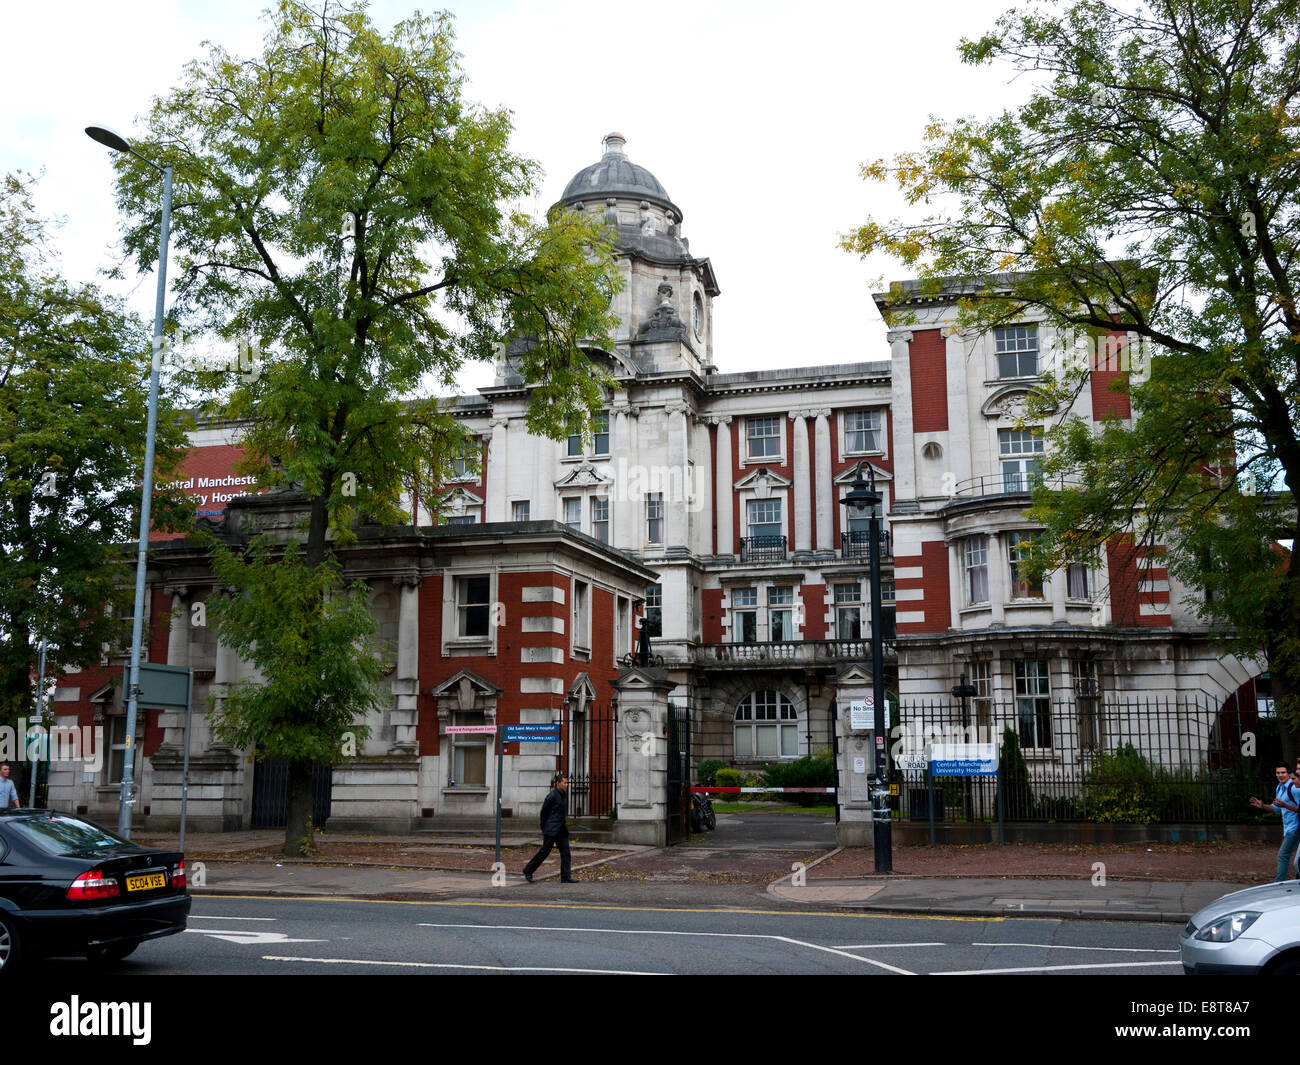 Central Manchester University Hospitals, Oxford rd, Manchester, UK. - Stock Image